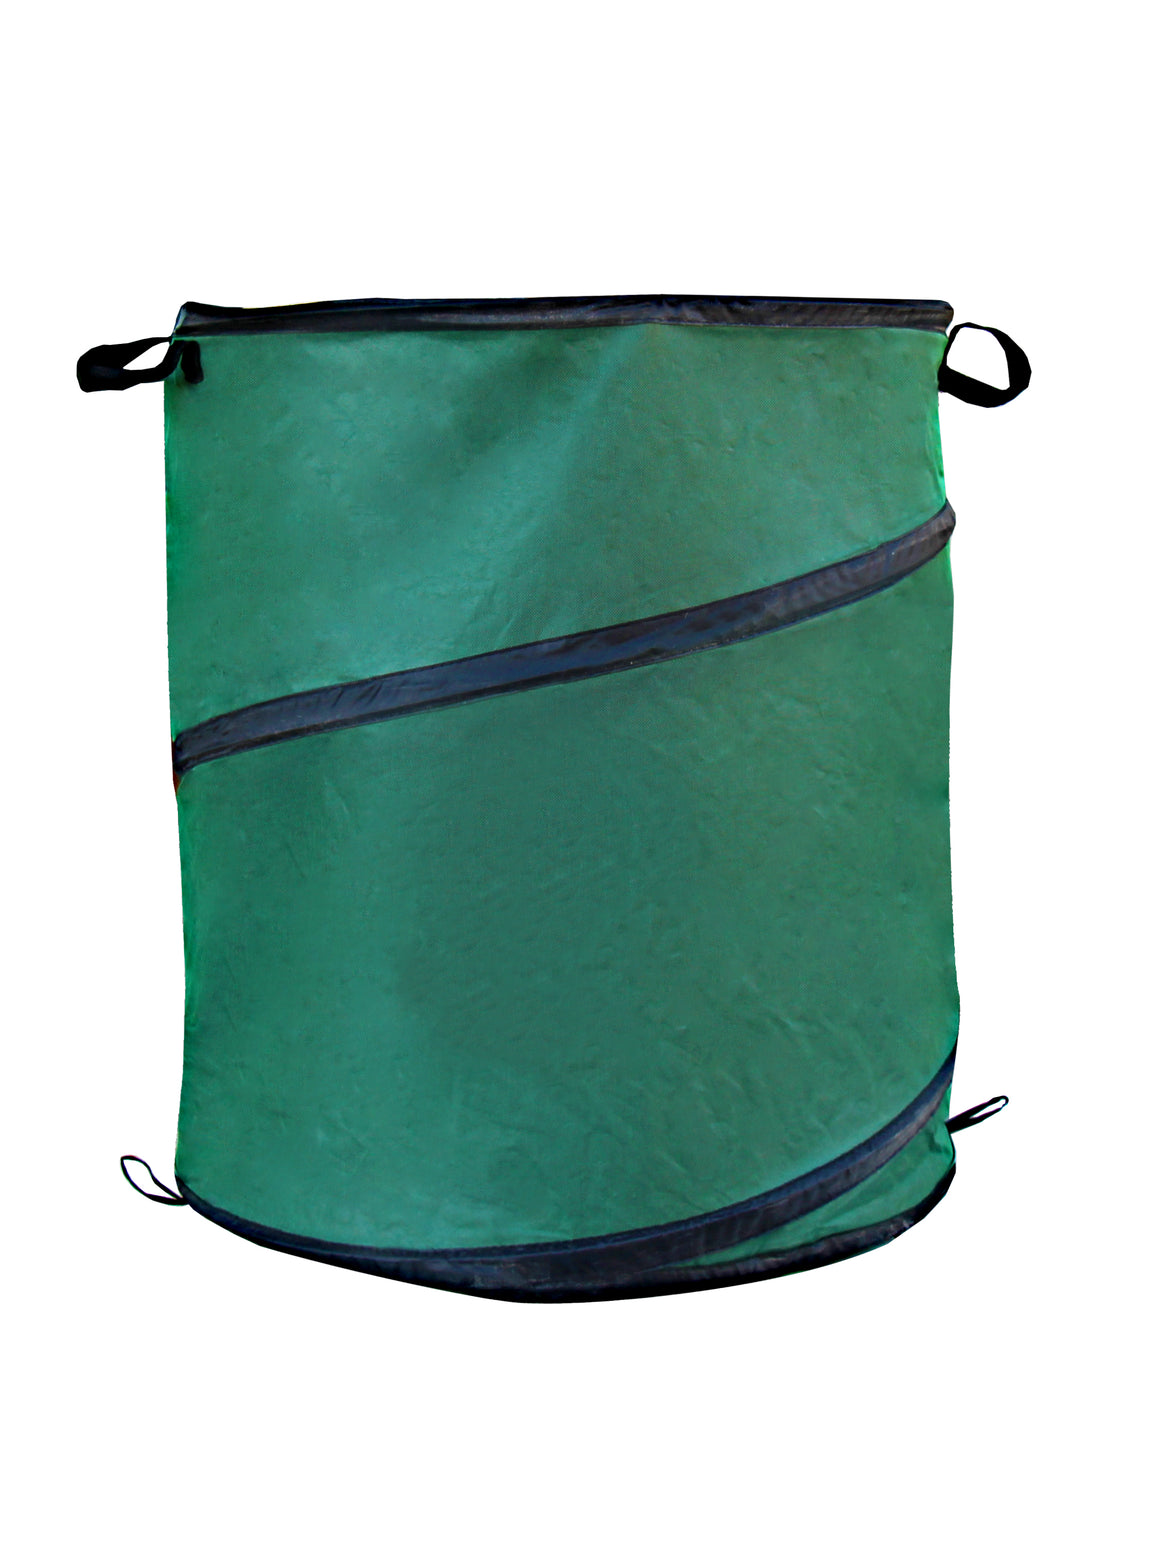 TABOR TOOLS 30-Gallon Collapsible Pop Up Container Bag (30 Gal)